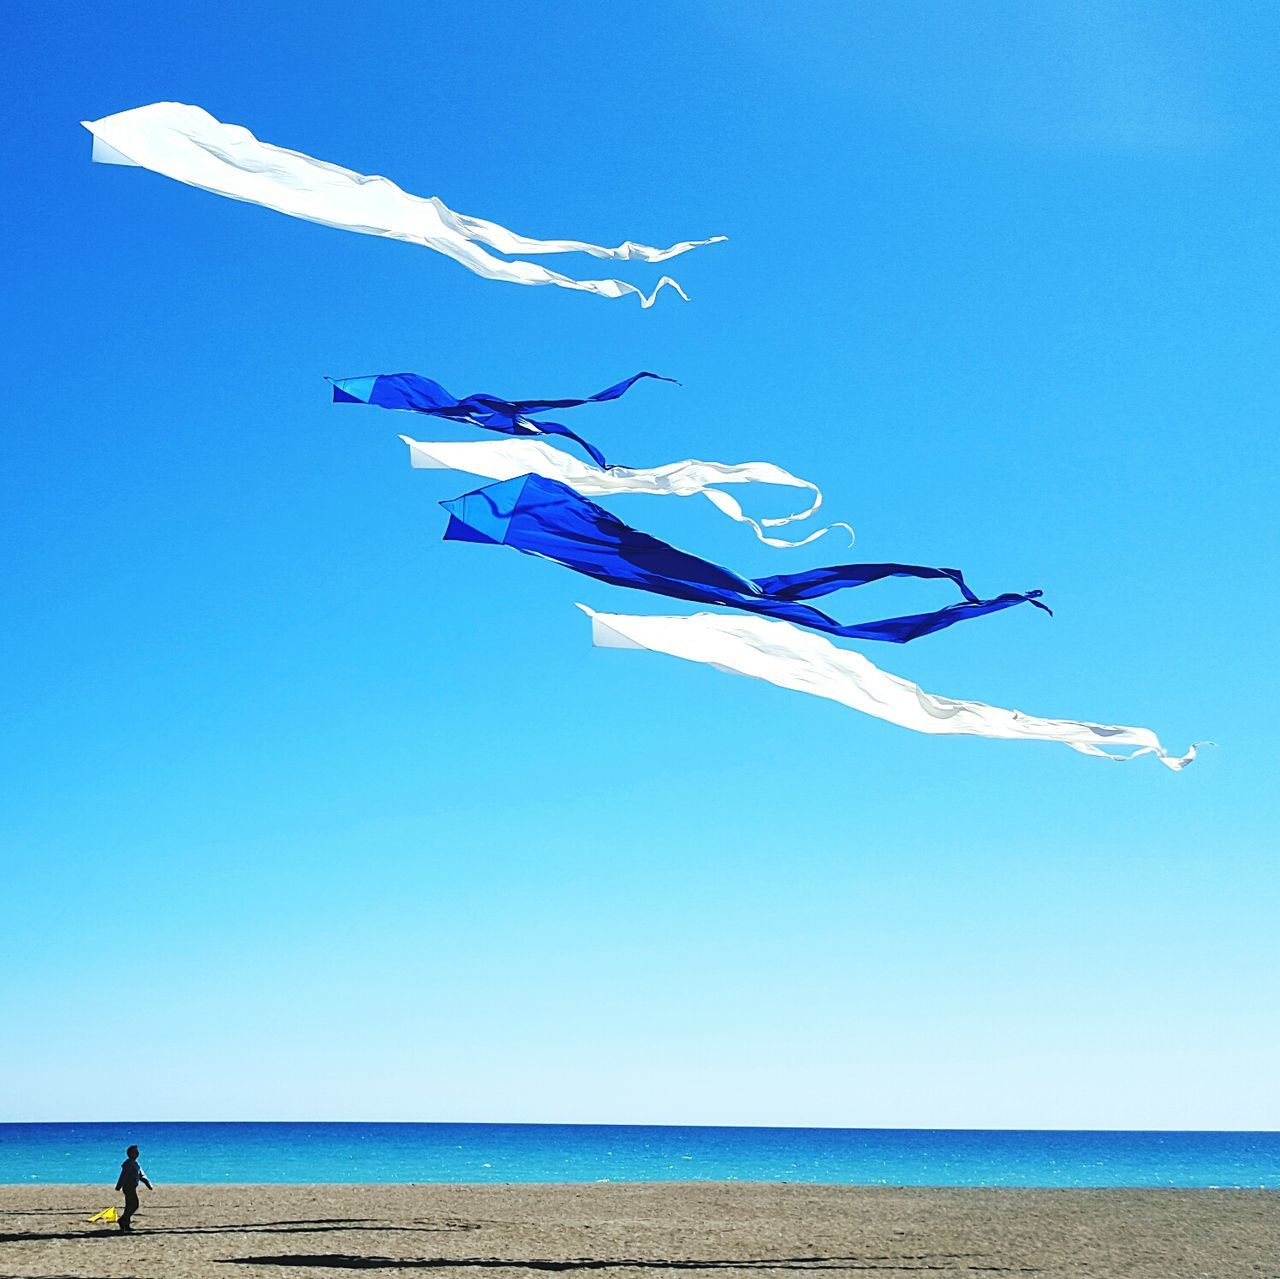 Lakeshore Lake Ontario The Beaches Kites Sunny Day Blue Sky Spring Breeze The Great Outdoors With Adobe